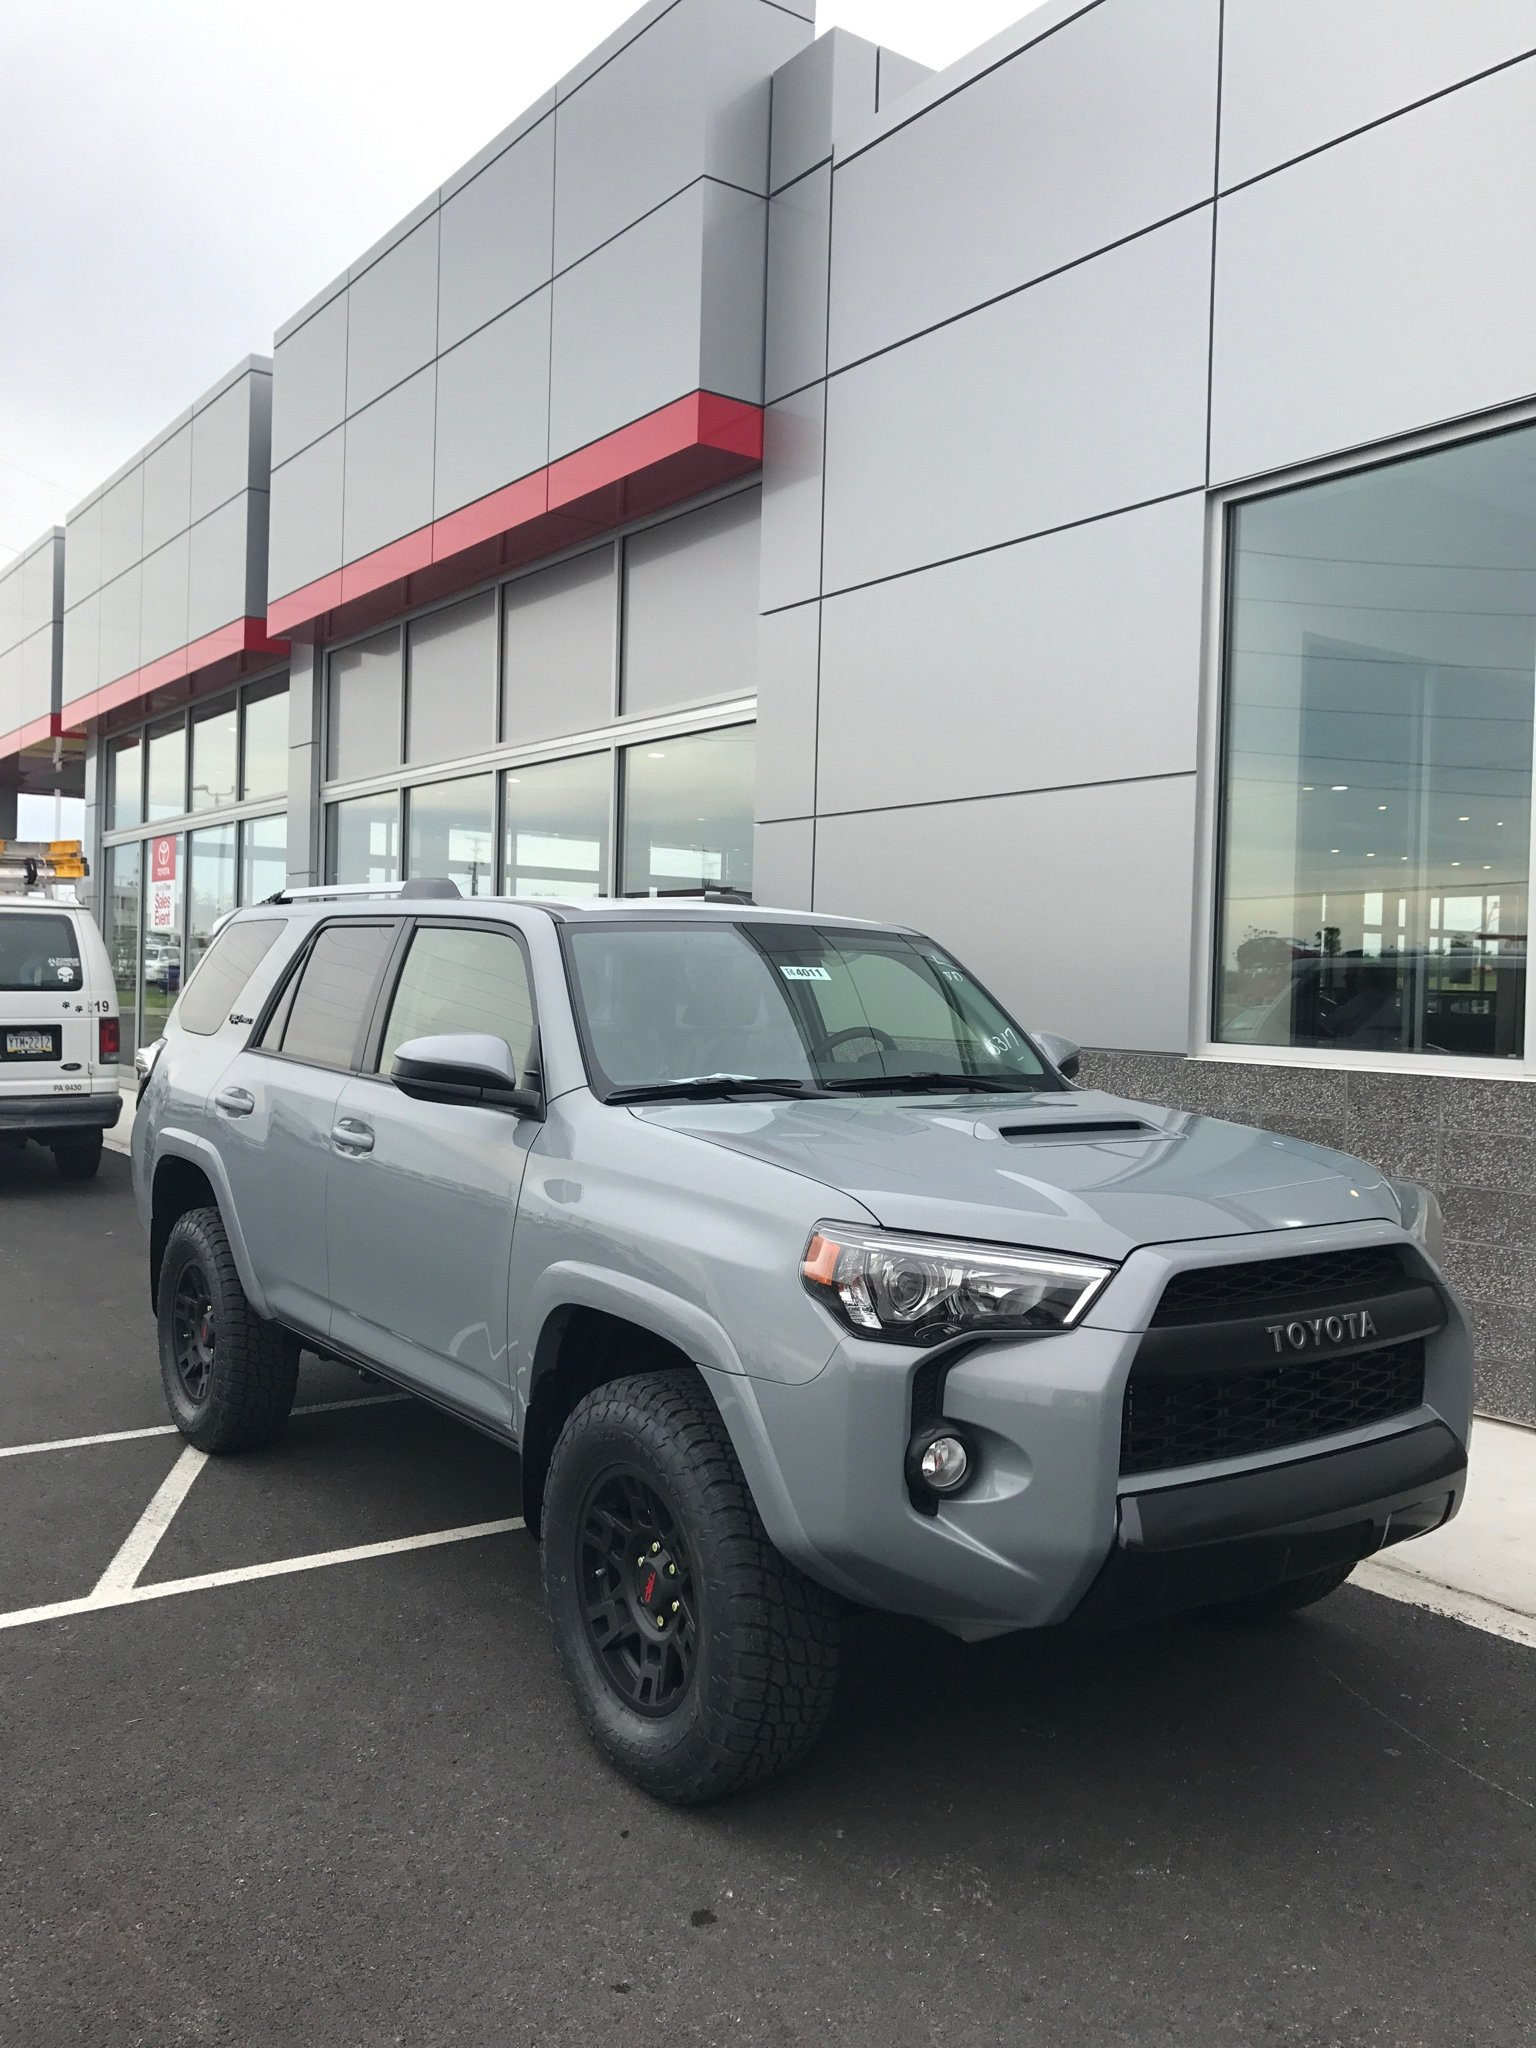 2018 Tacoma Colors >> 2018 TRD Pro Colors...Cement? - Page 3 - Toyota 4Runner Forum - Largest 4Runner Forum